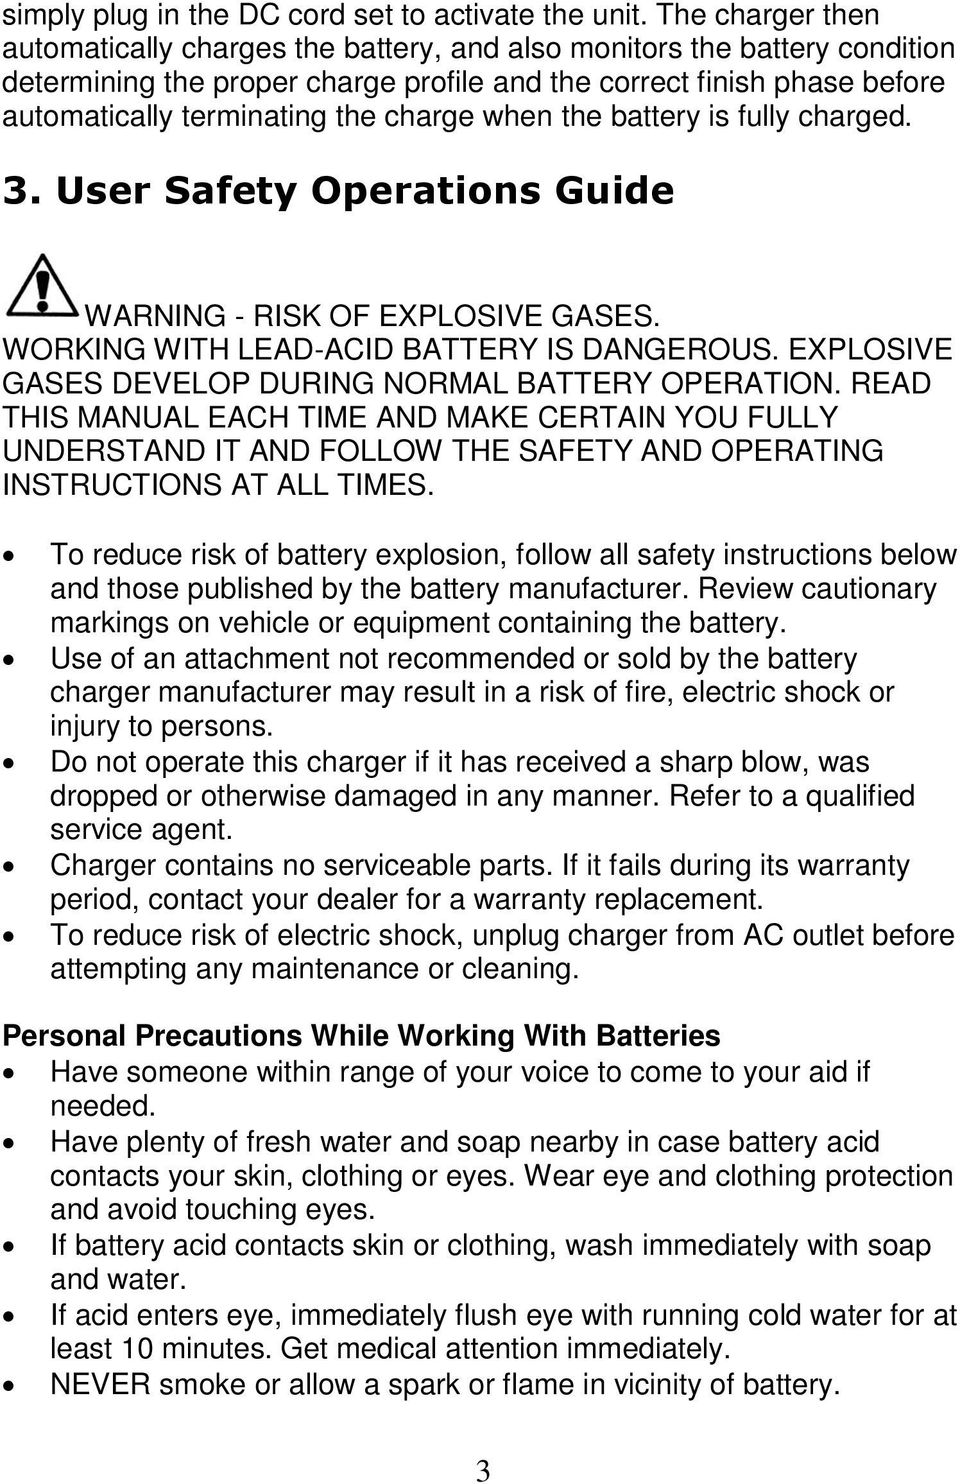 Accusense Charge Series On Off Board Fully Automatic Battery Charger Wiring Diagram For 36 Volt Power Wise When The Is Charged 3 User Safety Operations Guide Warning